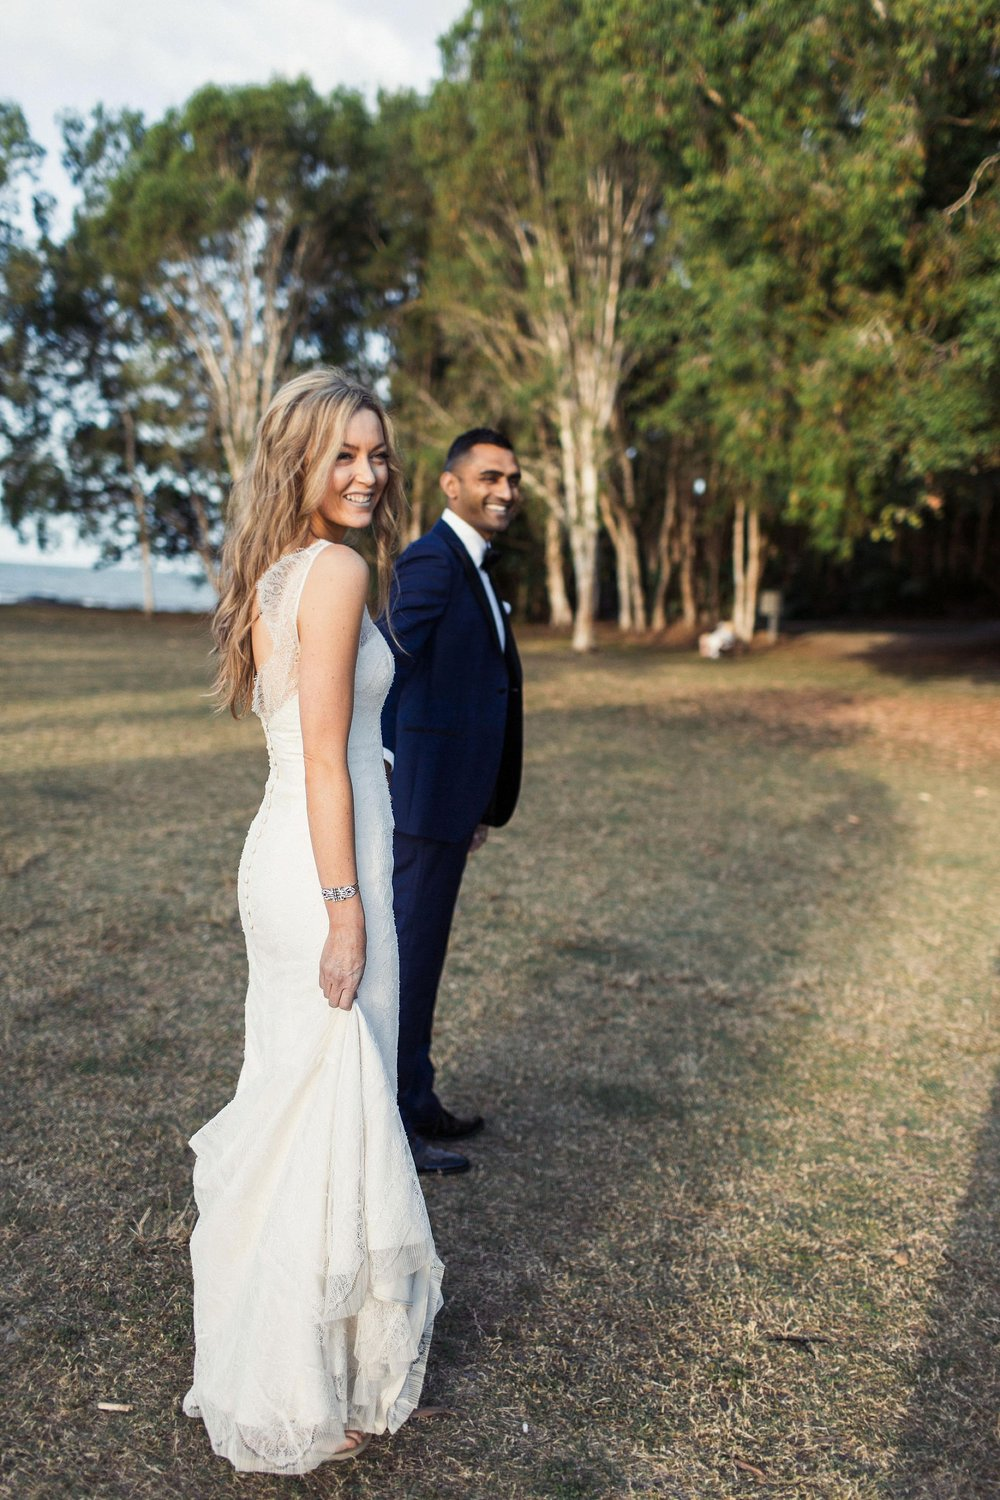 wedding_photography_port_douglas_0184-min.jpg